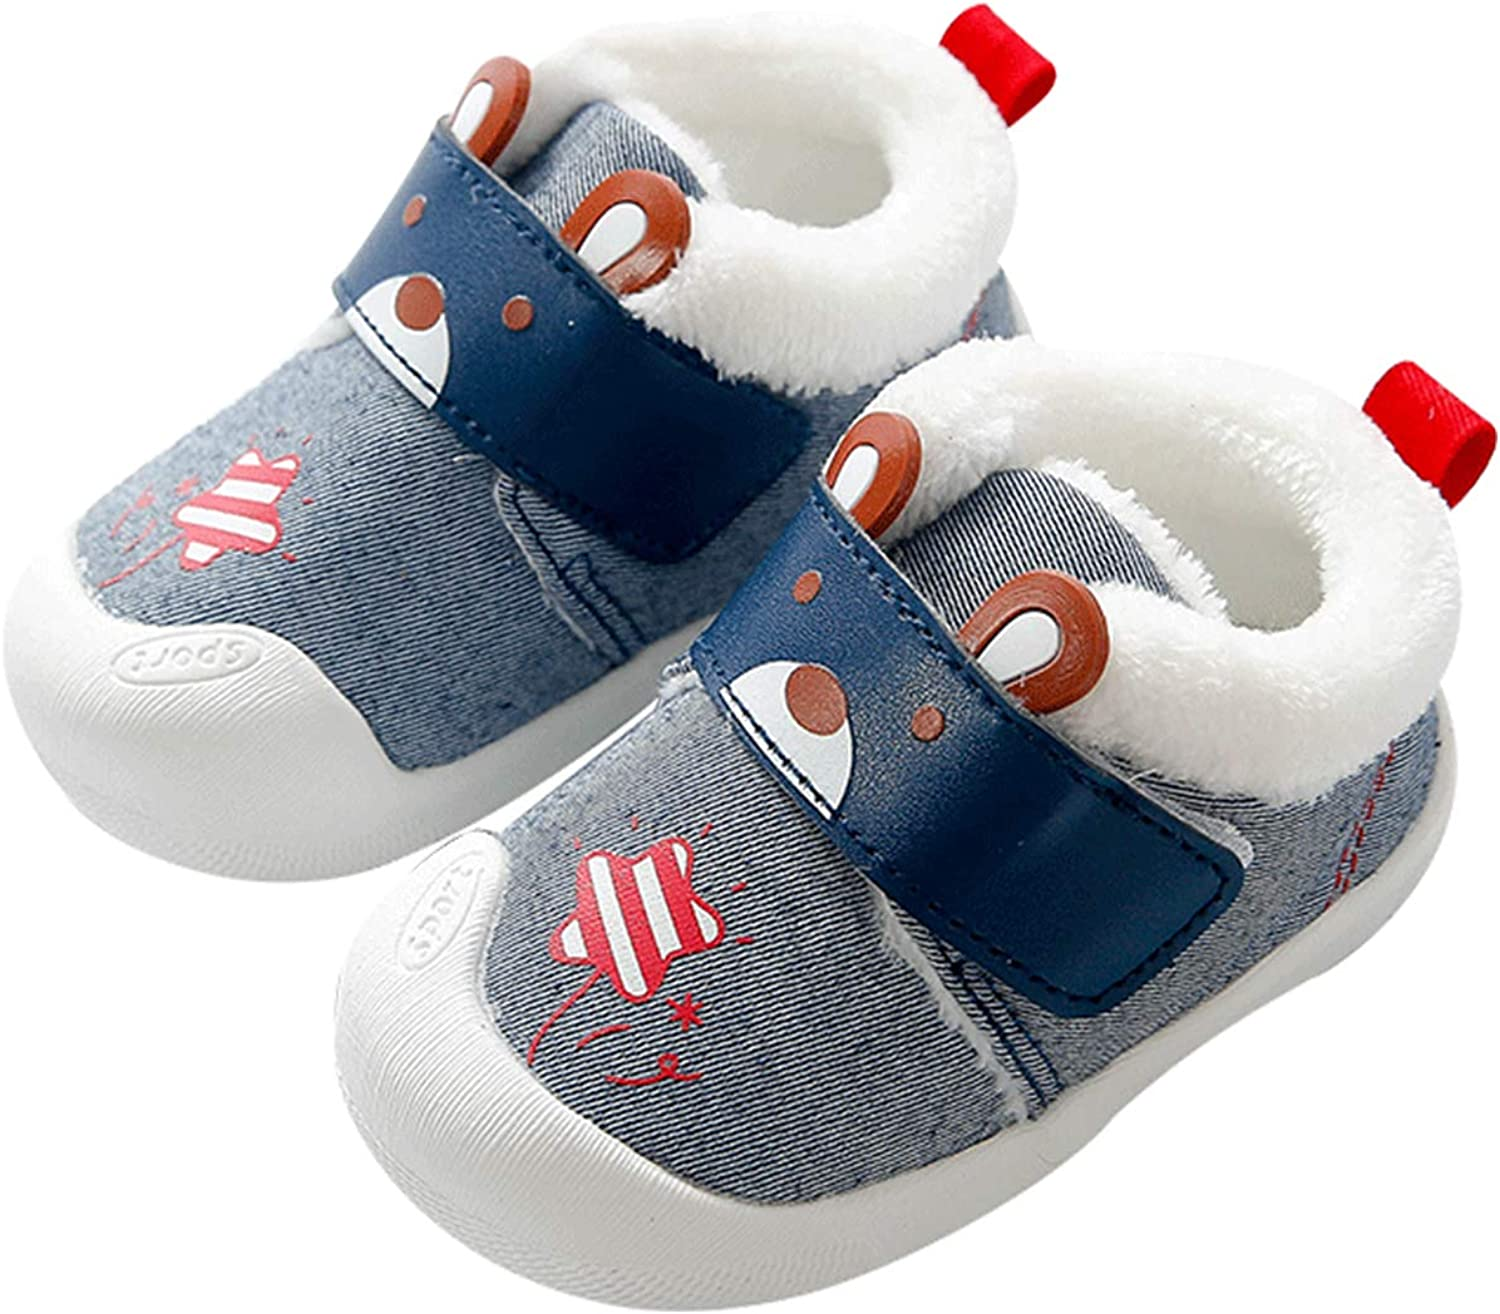 Roaays M Baby Shoes Toddler Leather Shoes Infant Shoes